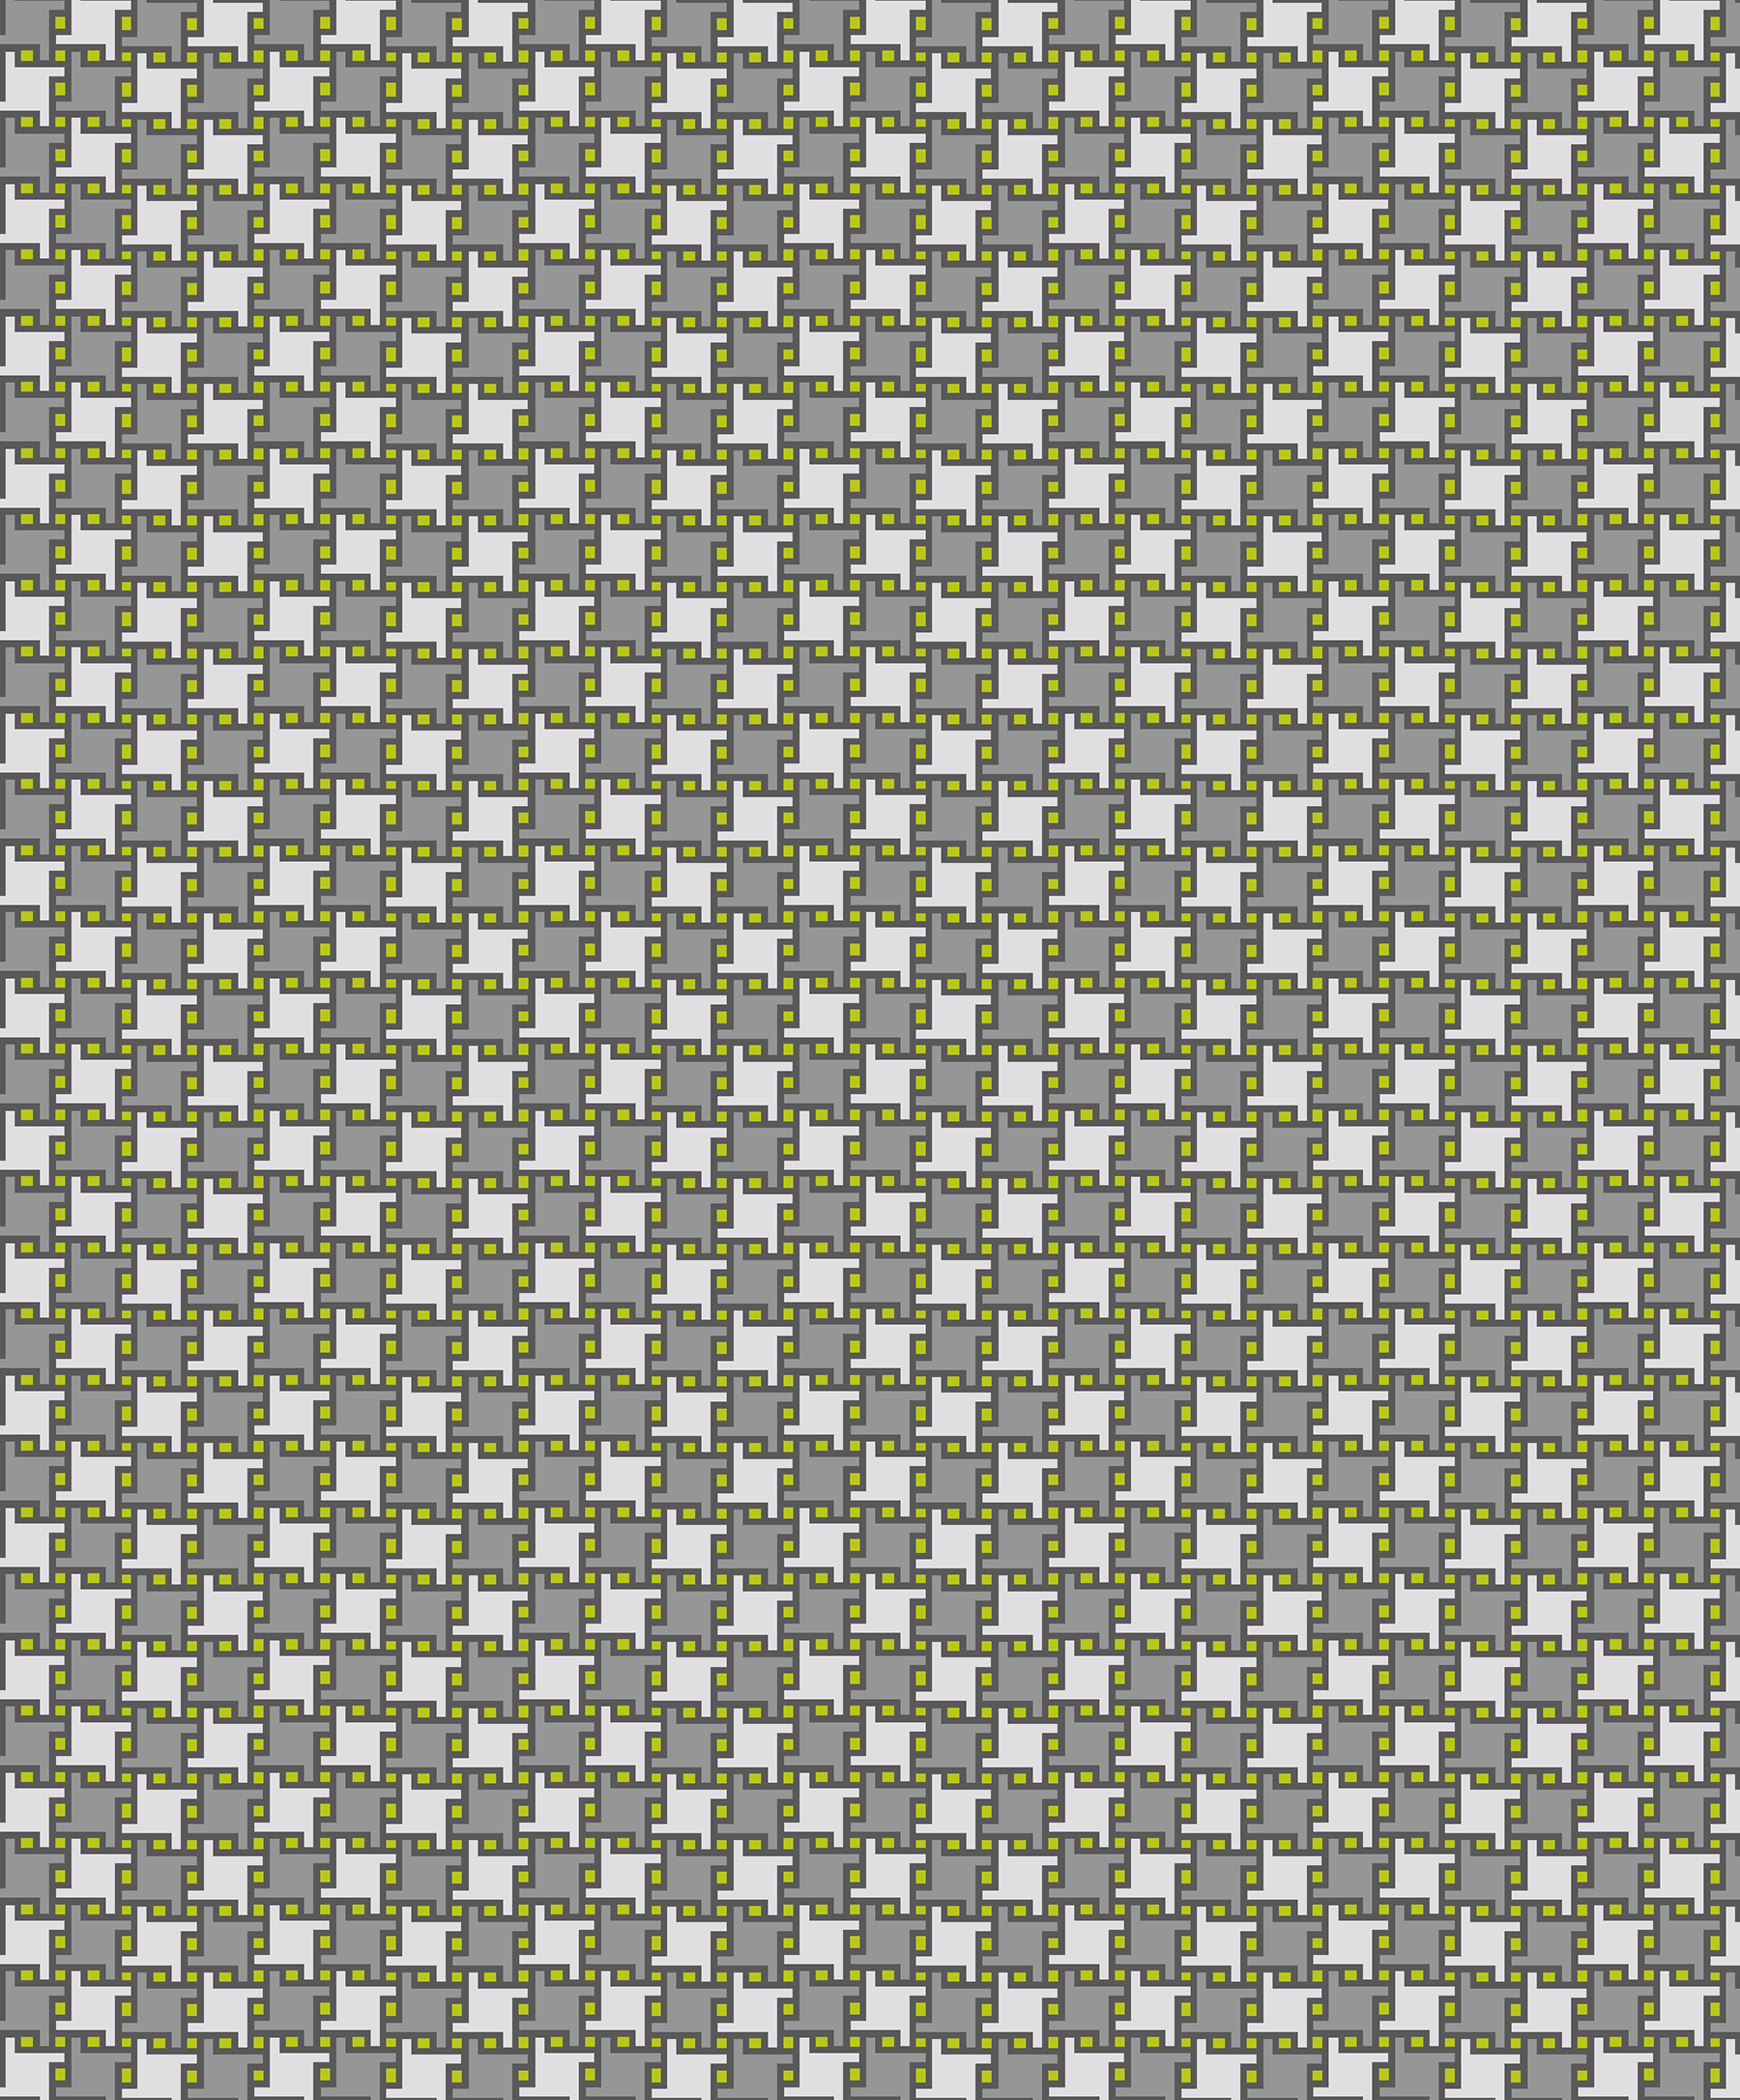 Mosaic Houndstooth.png